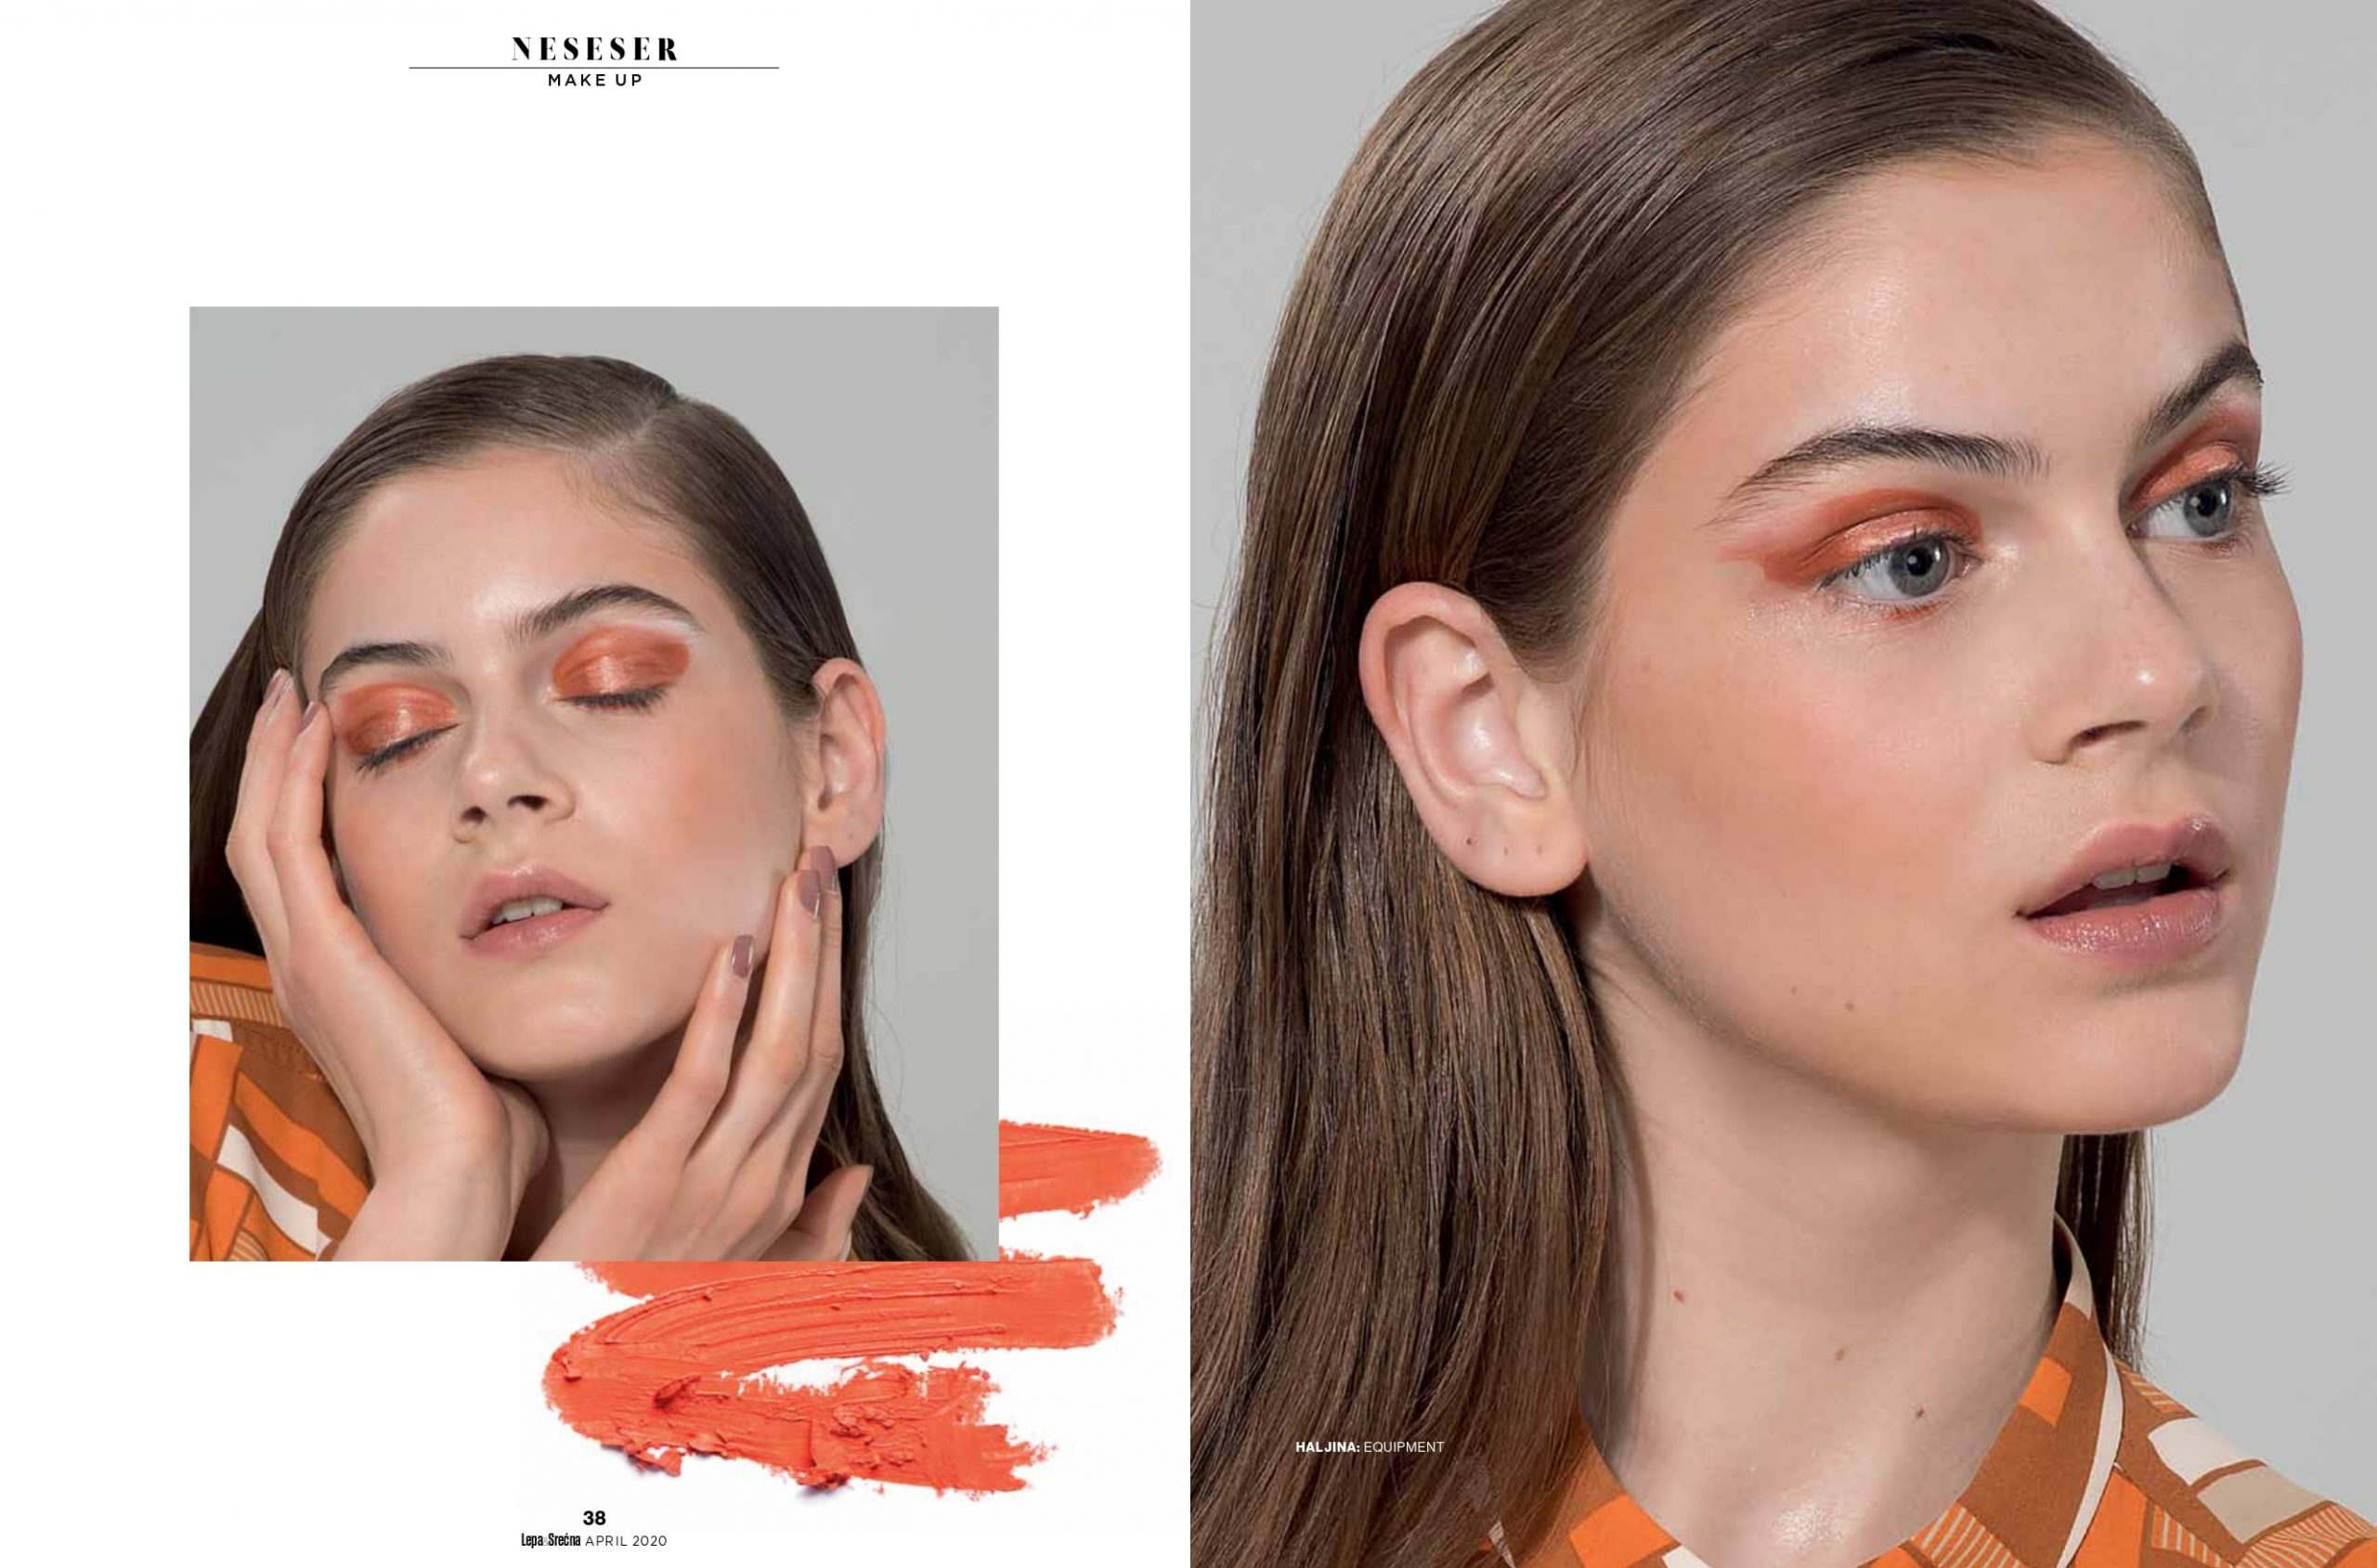 034 039 Beauty Editorial LS April 2020 Page 0003 Min